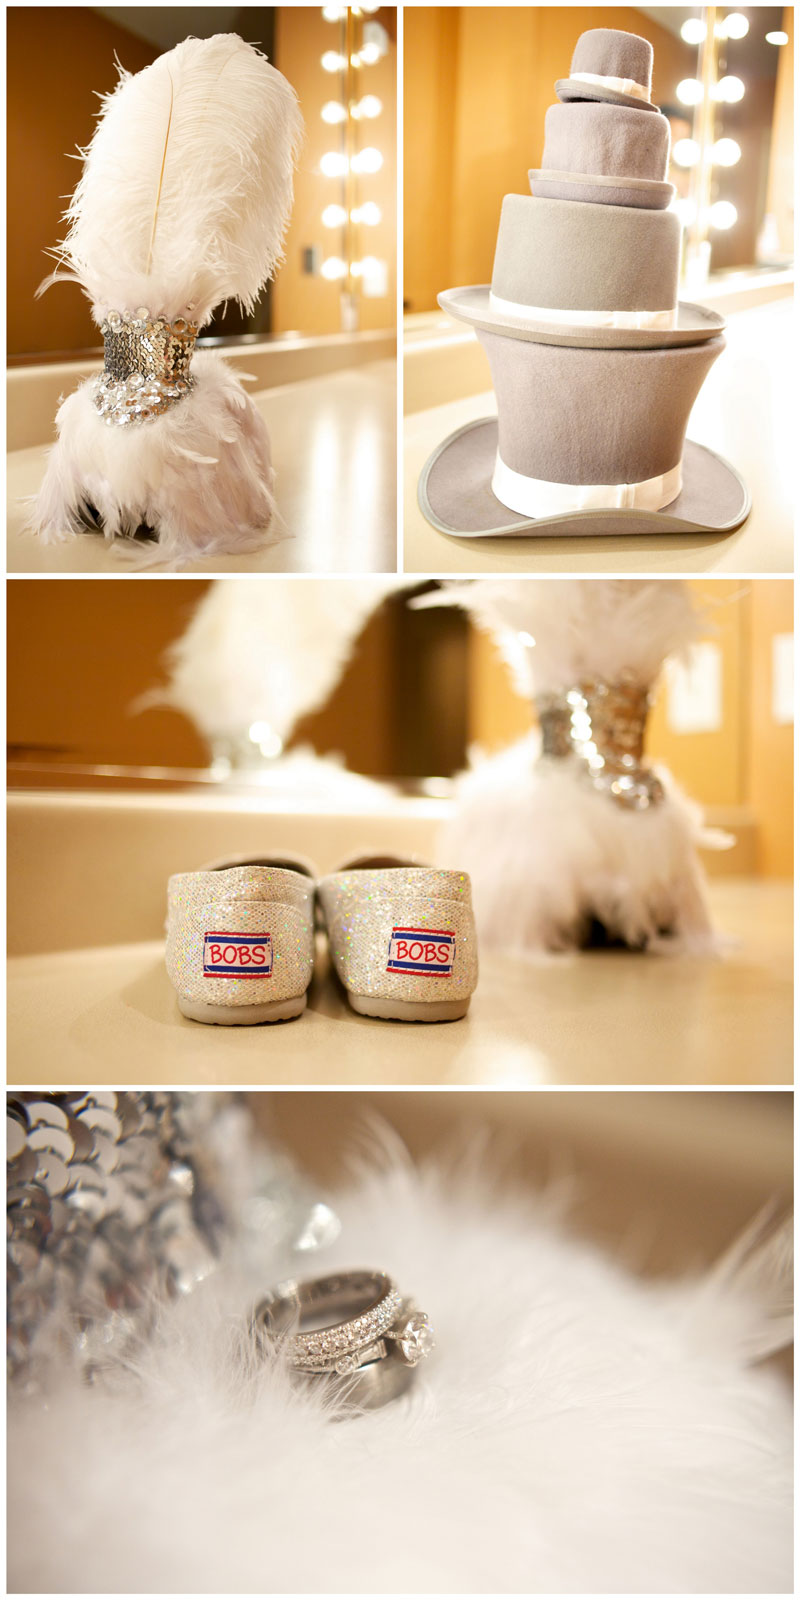 Offbeat, indie wedding details like funny hats for bride and groom, silver glitter shoes, wedding rings